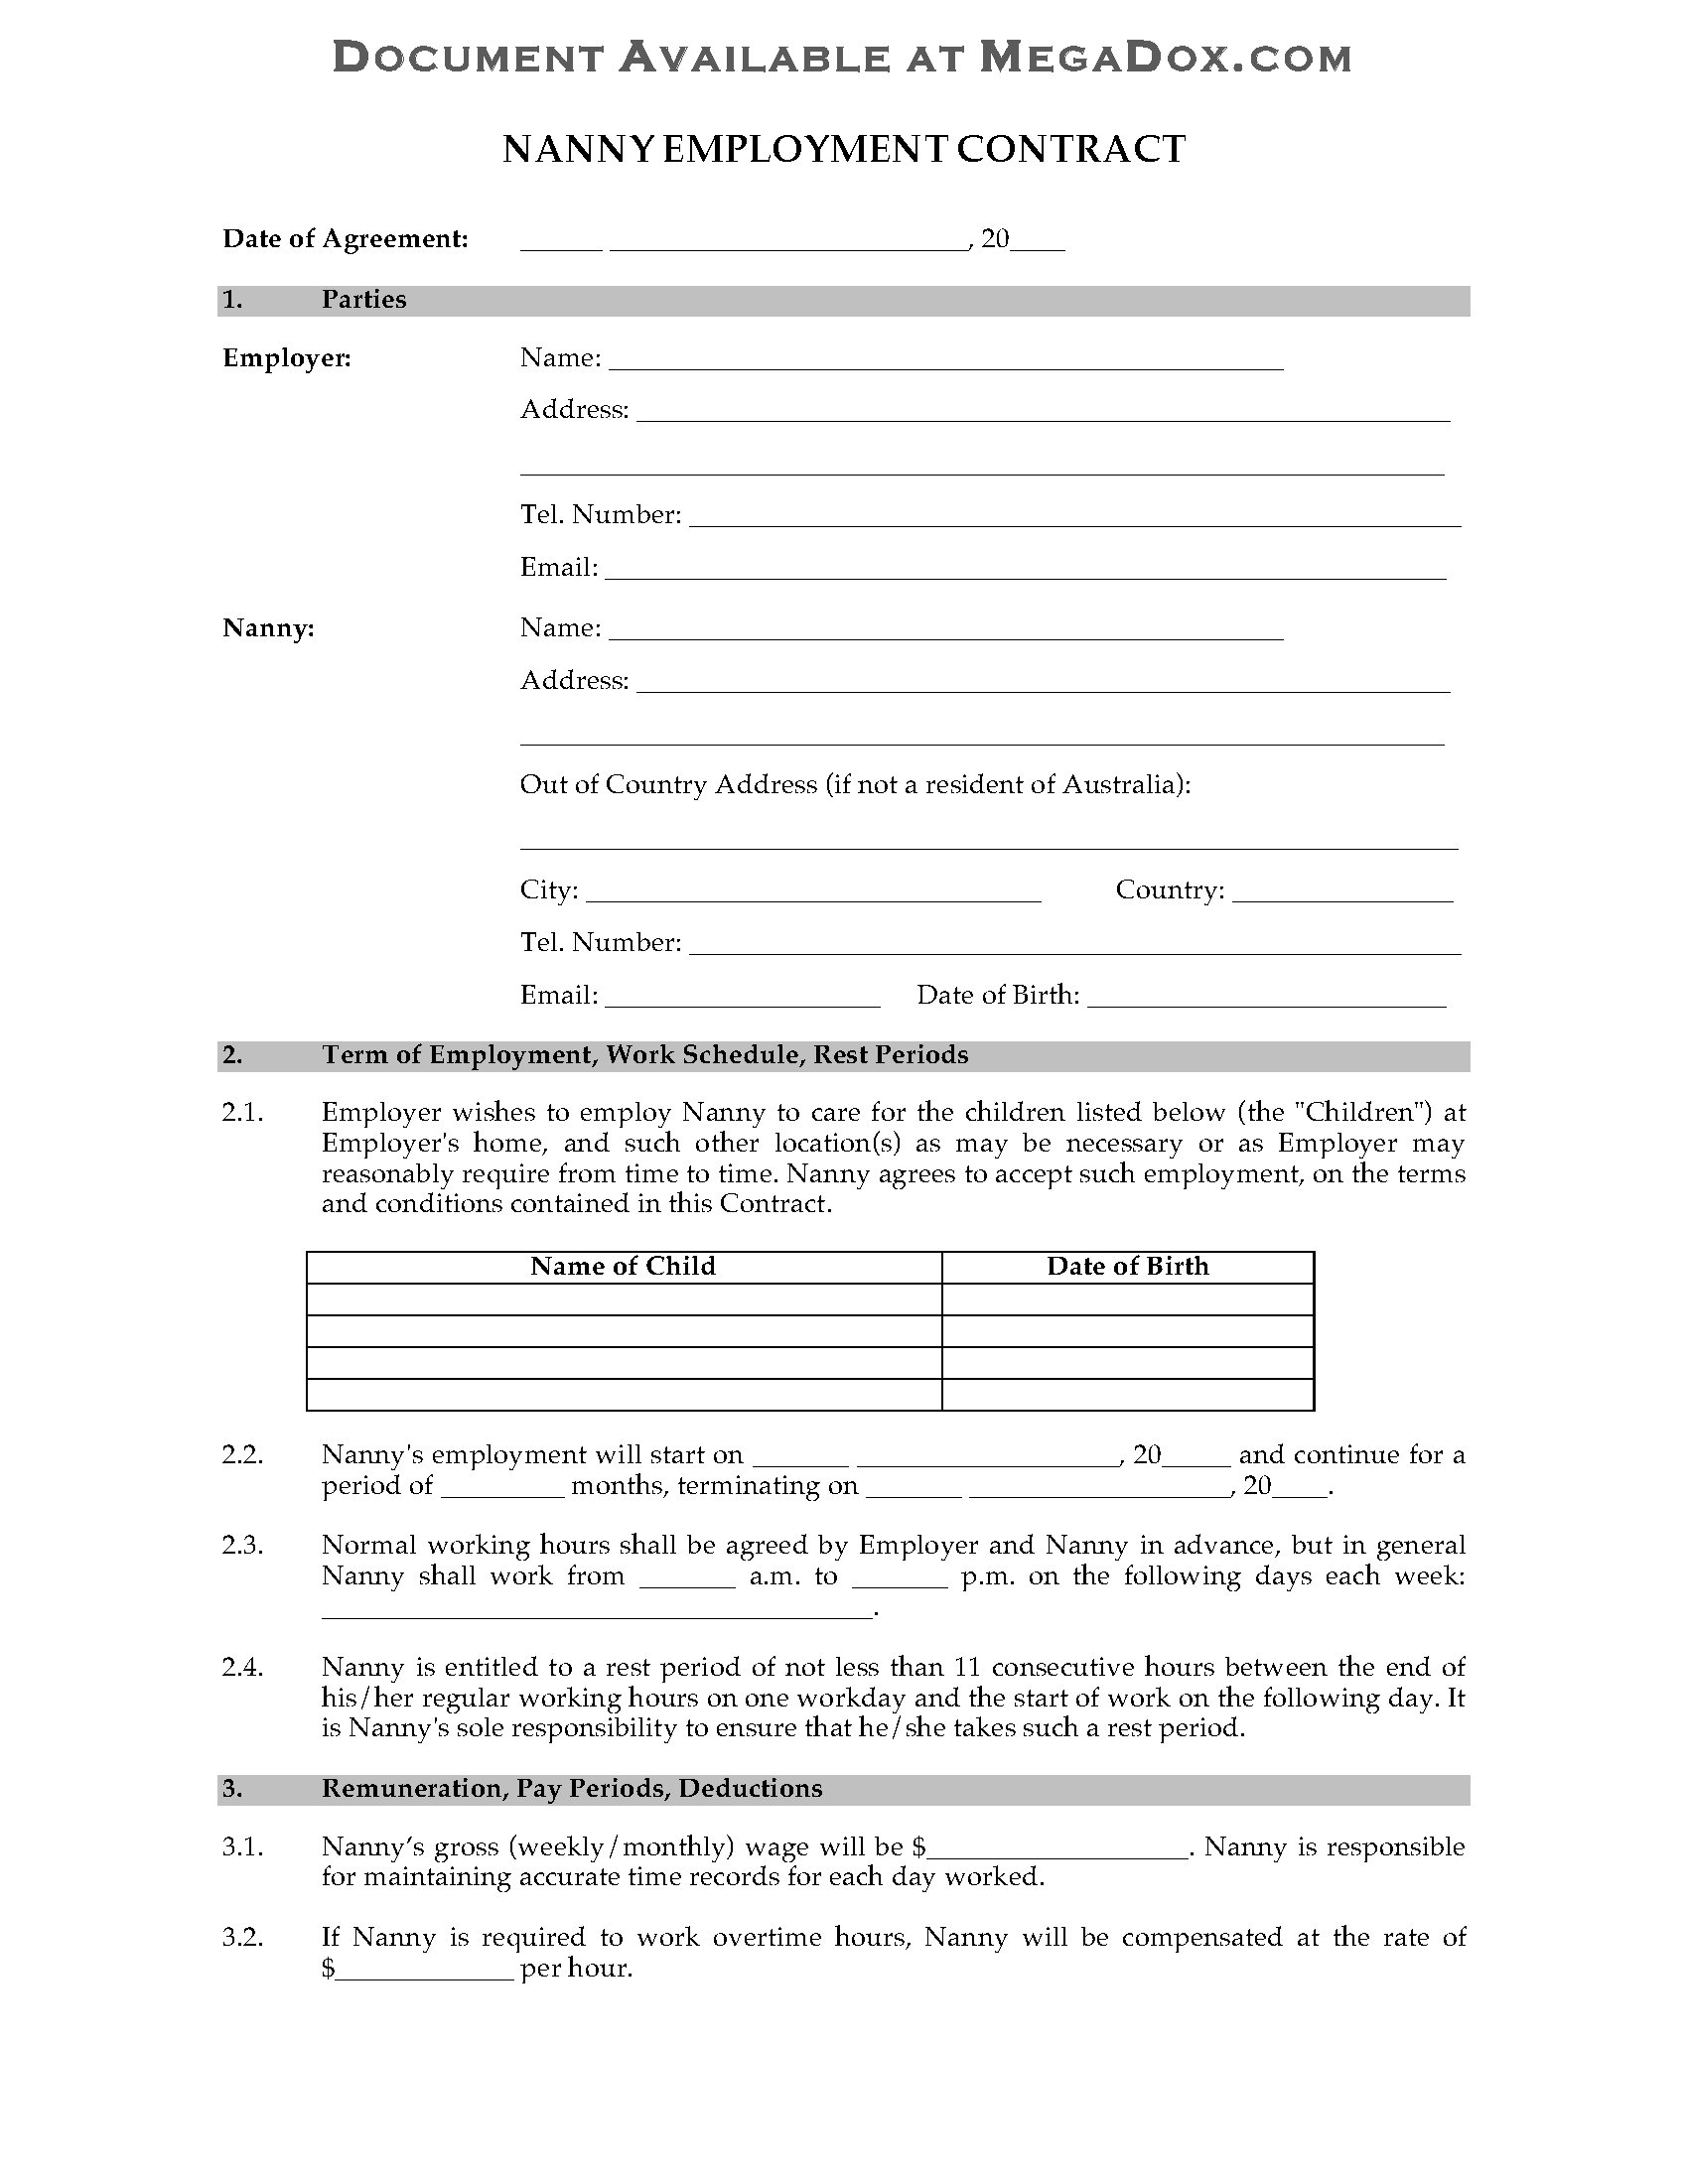 Nanny Agreement Template. confidentiality agreement template ...